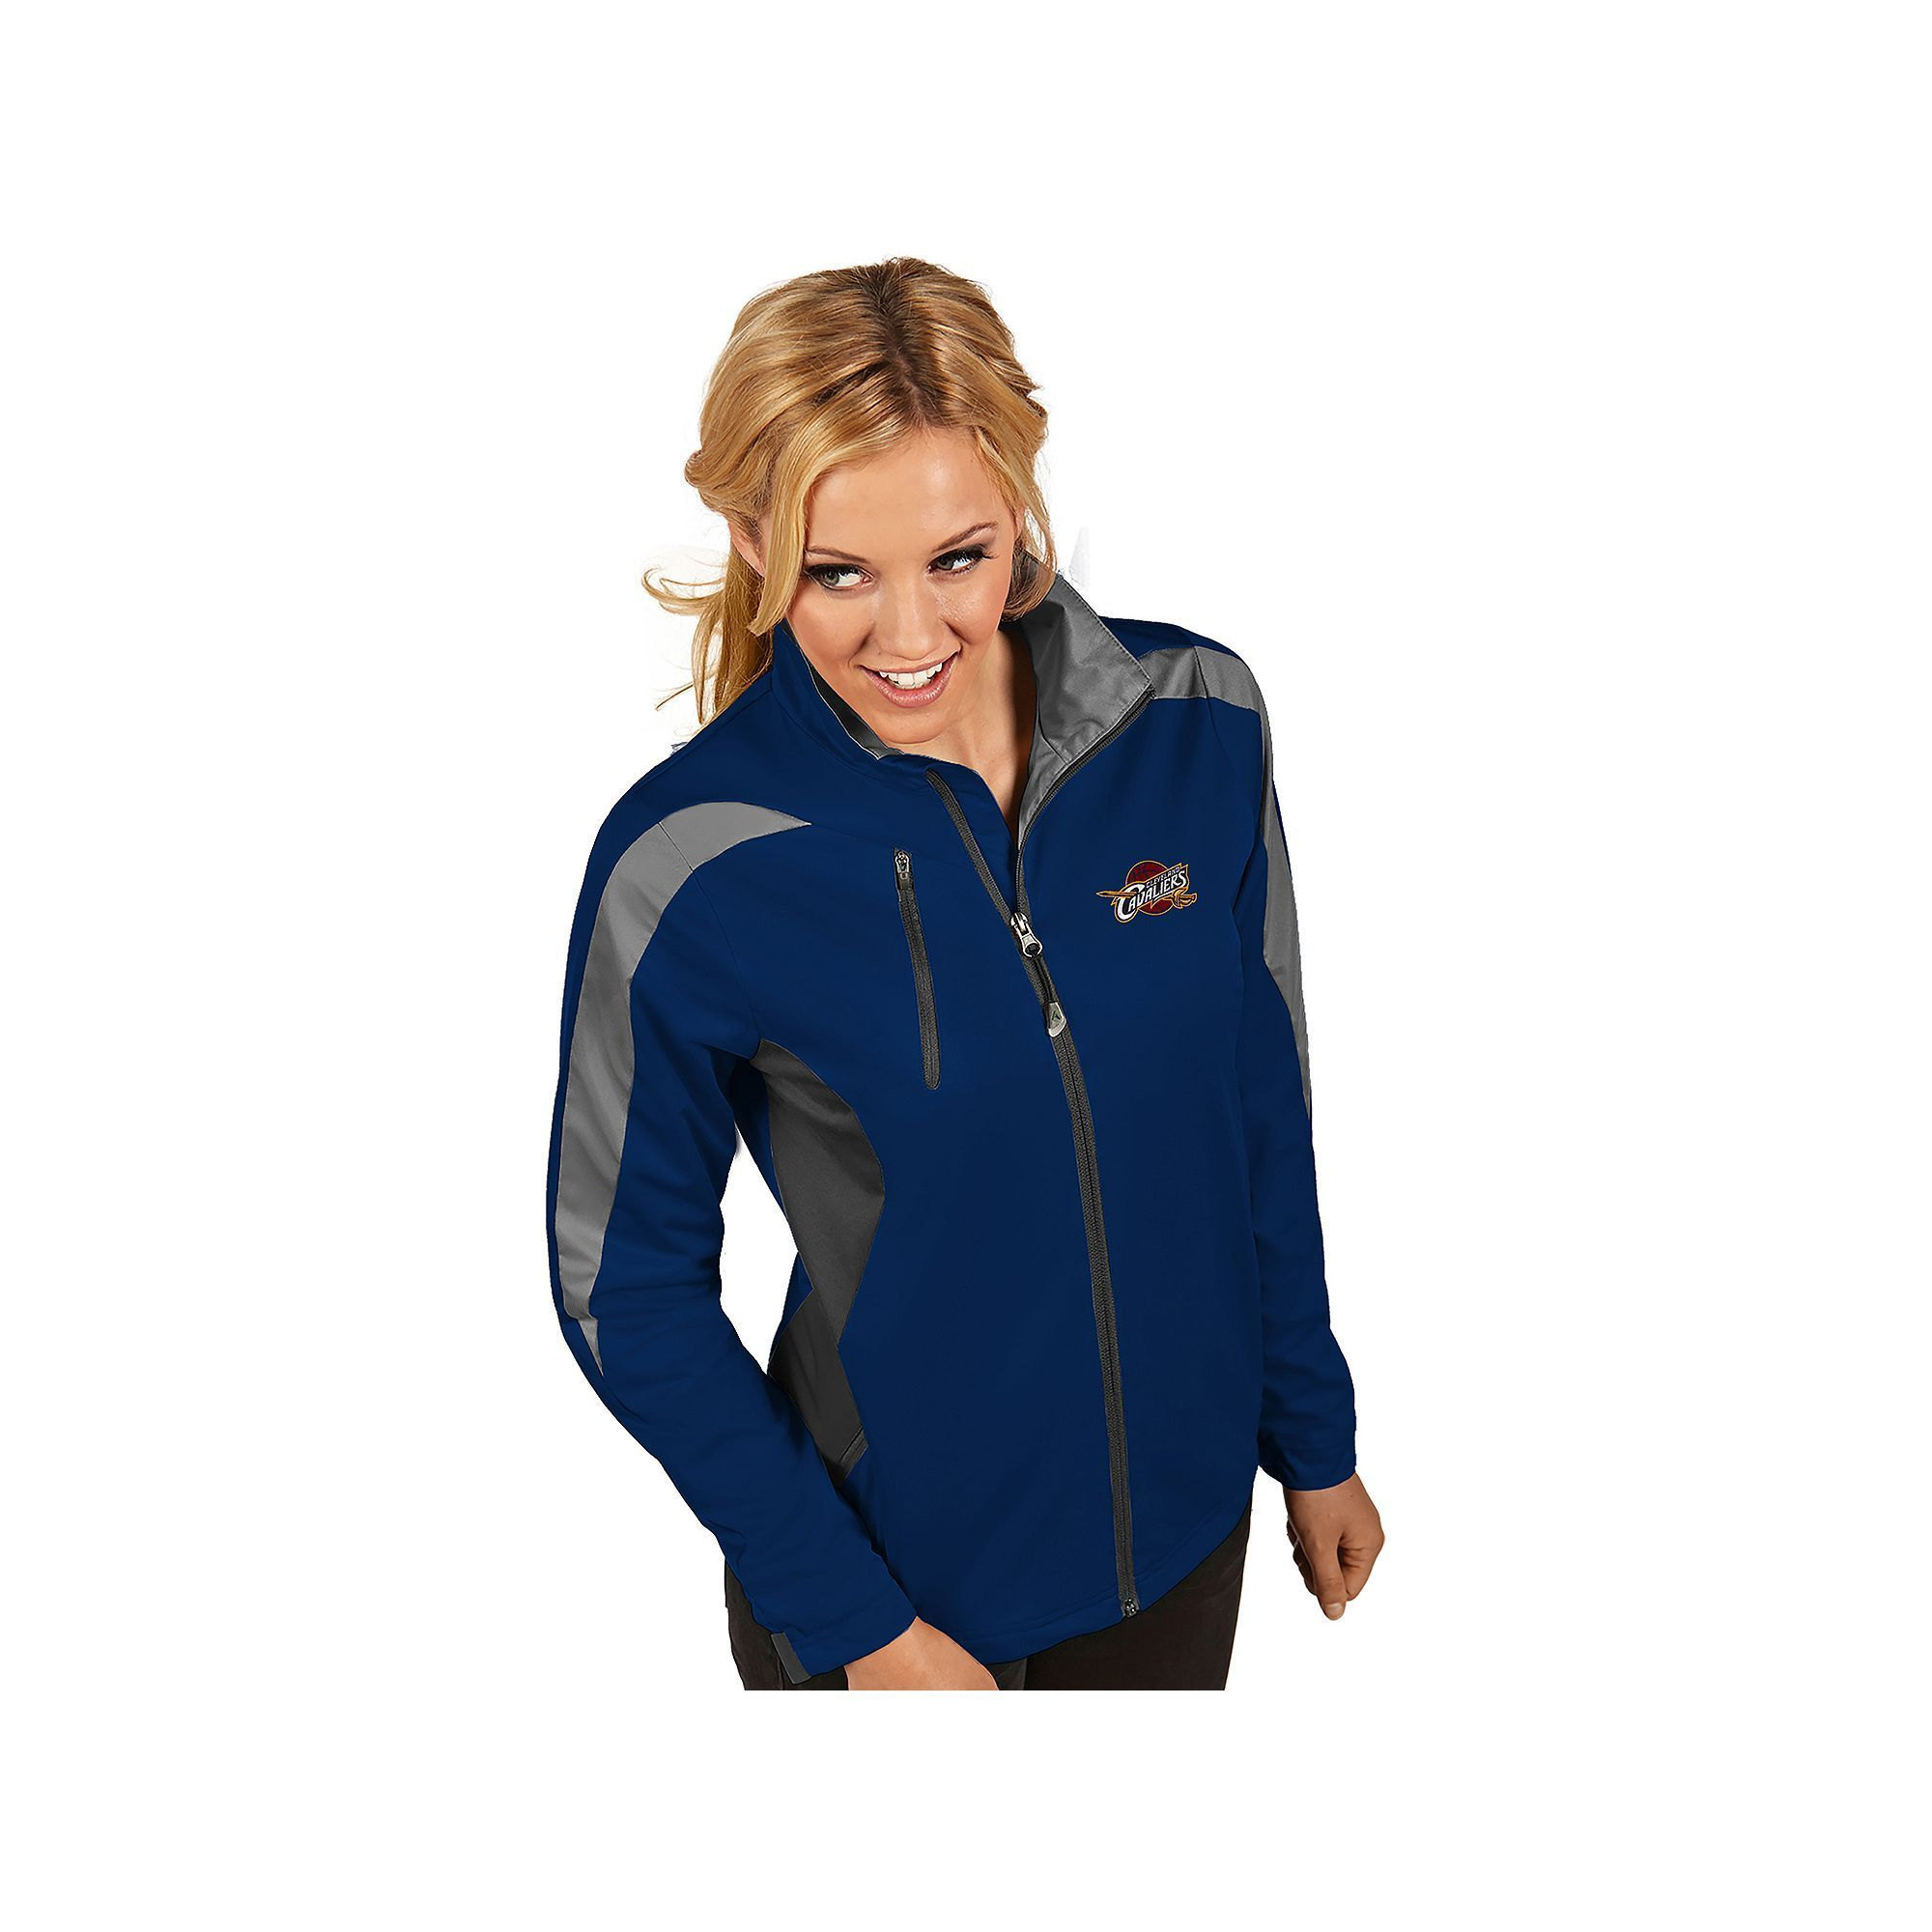 Women's Antigua Cleveland Cavaliers Discover Pullover, Size: Medium, Blue (Navy)